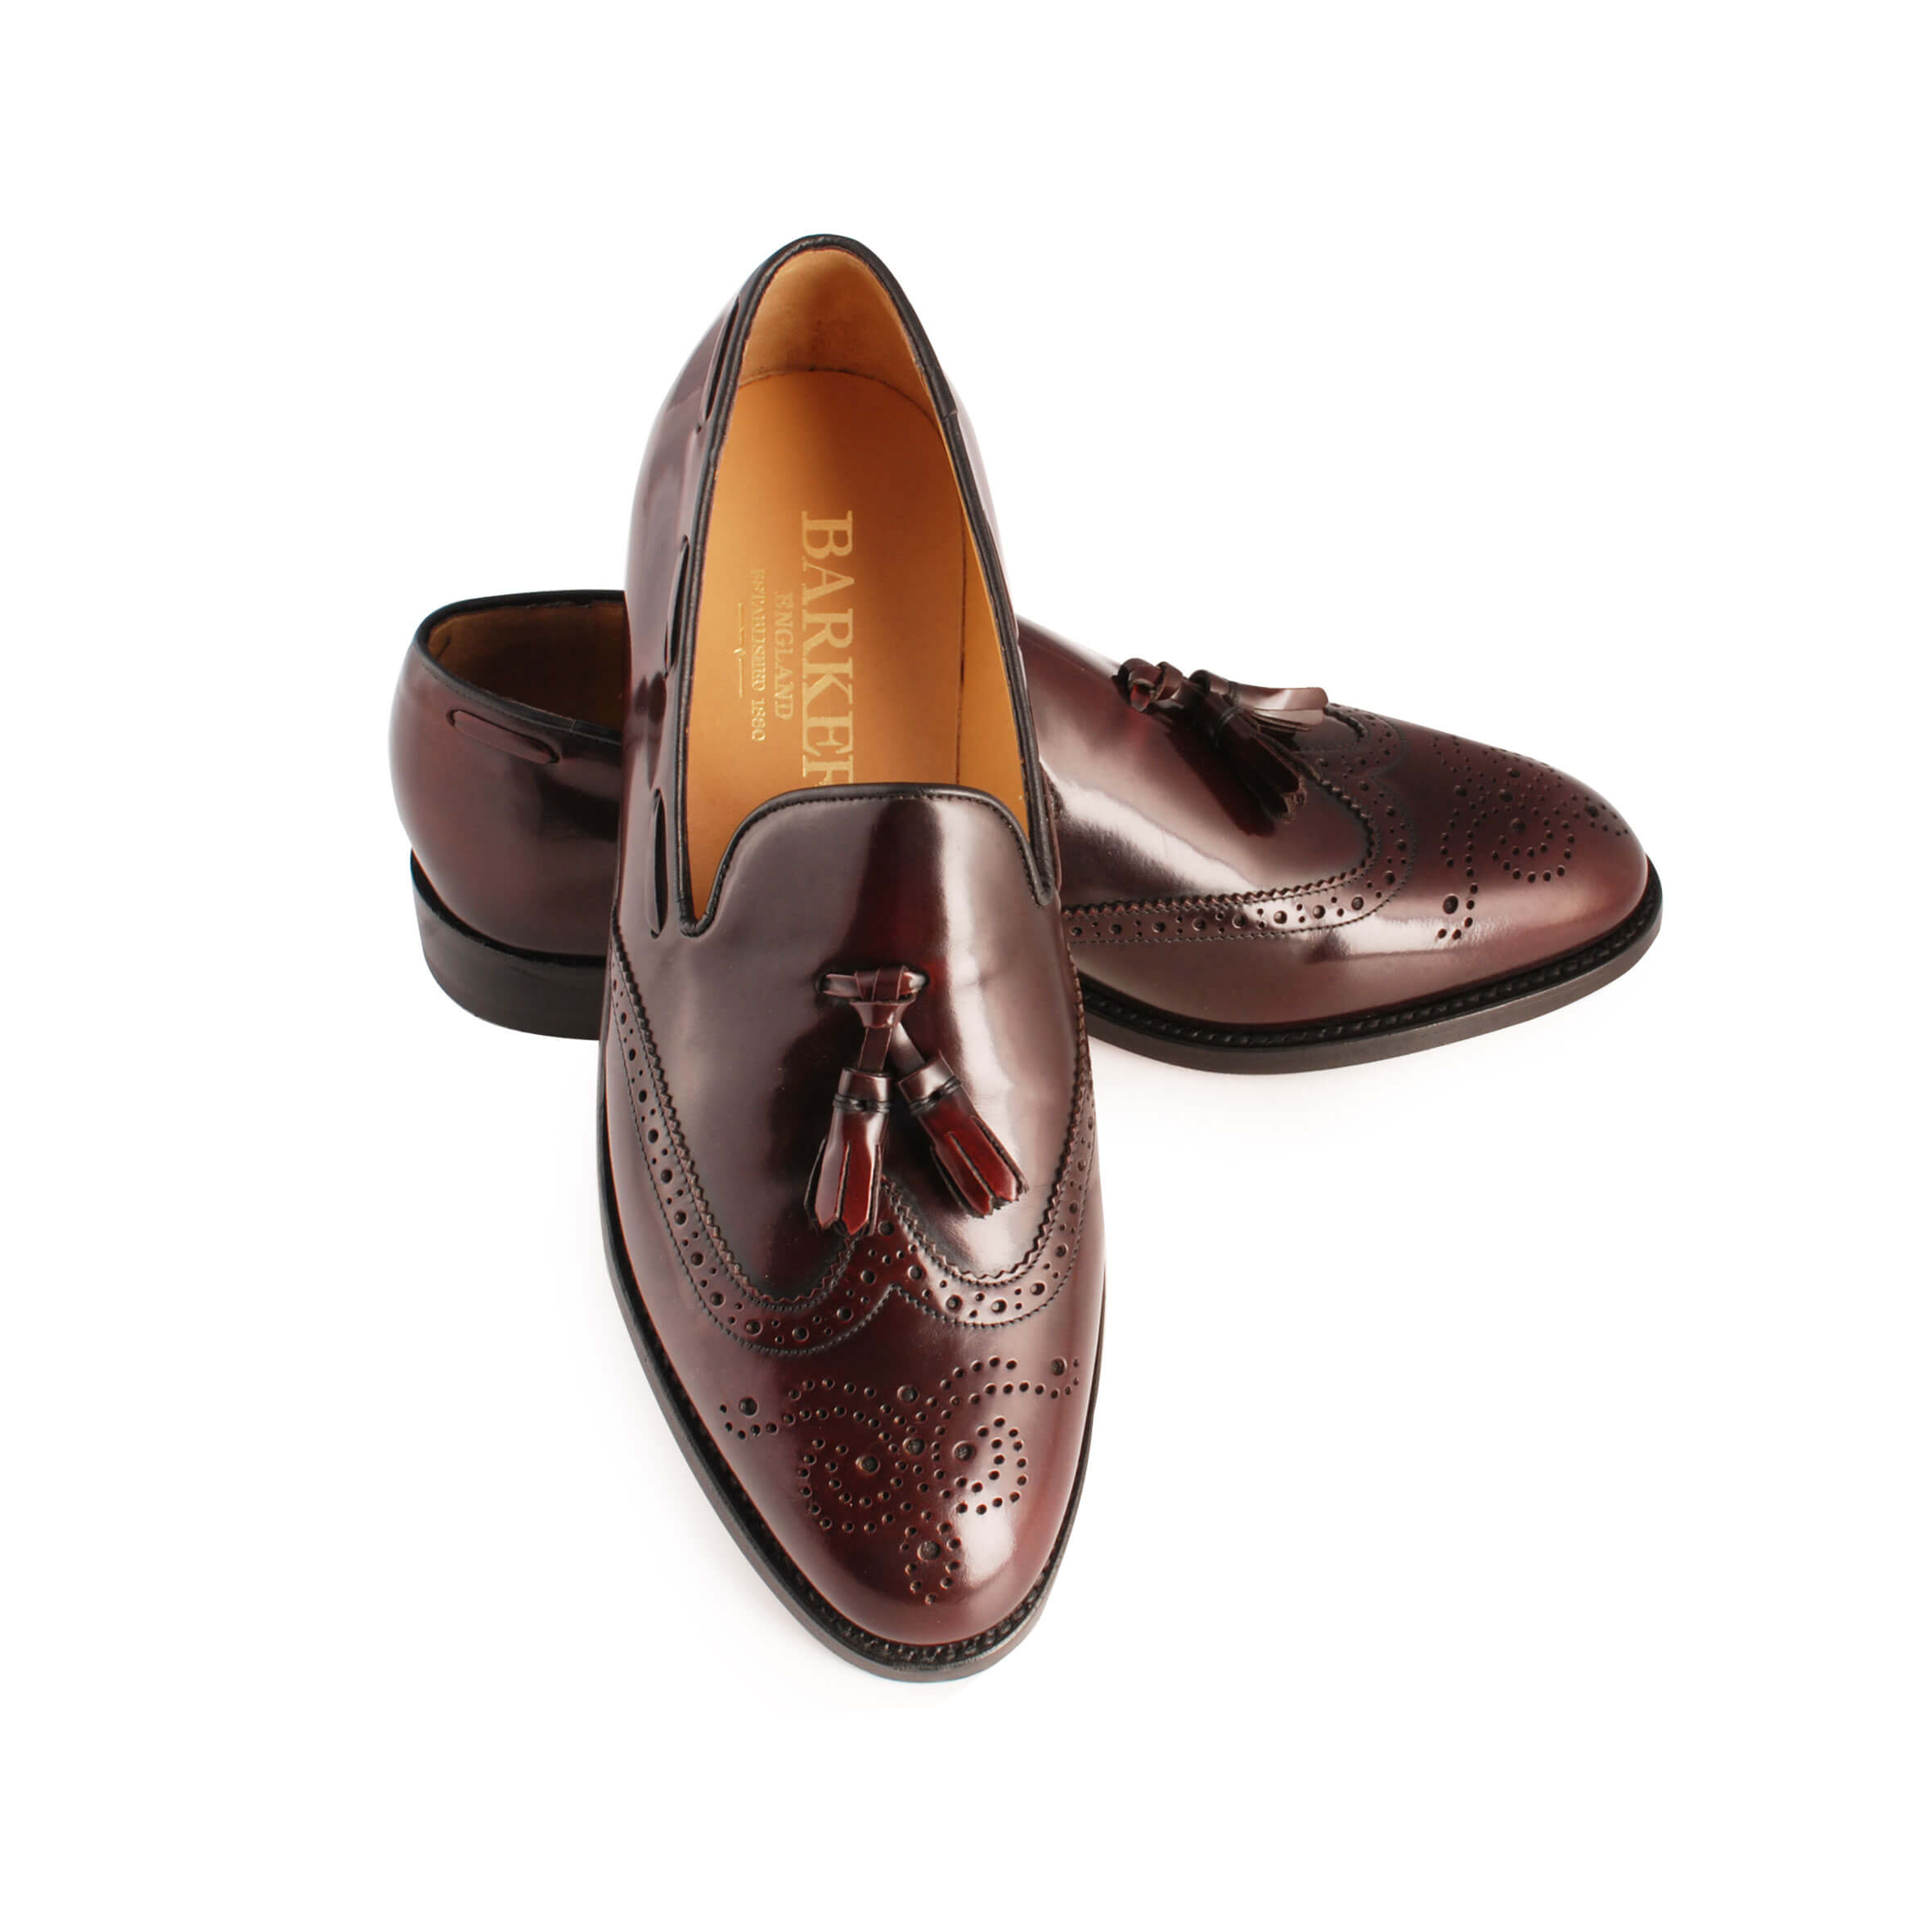 barker clive shoes off 53% - www